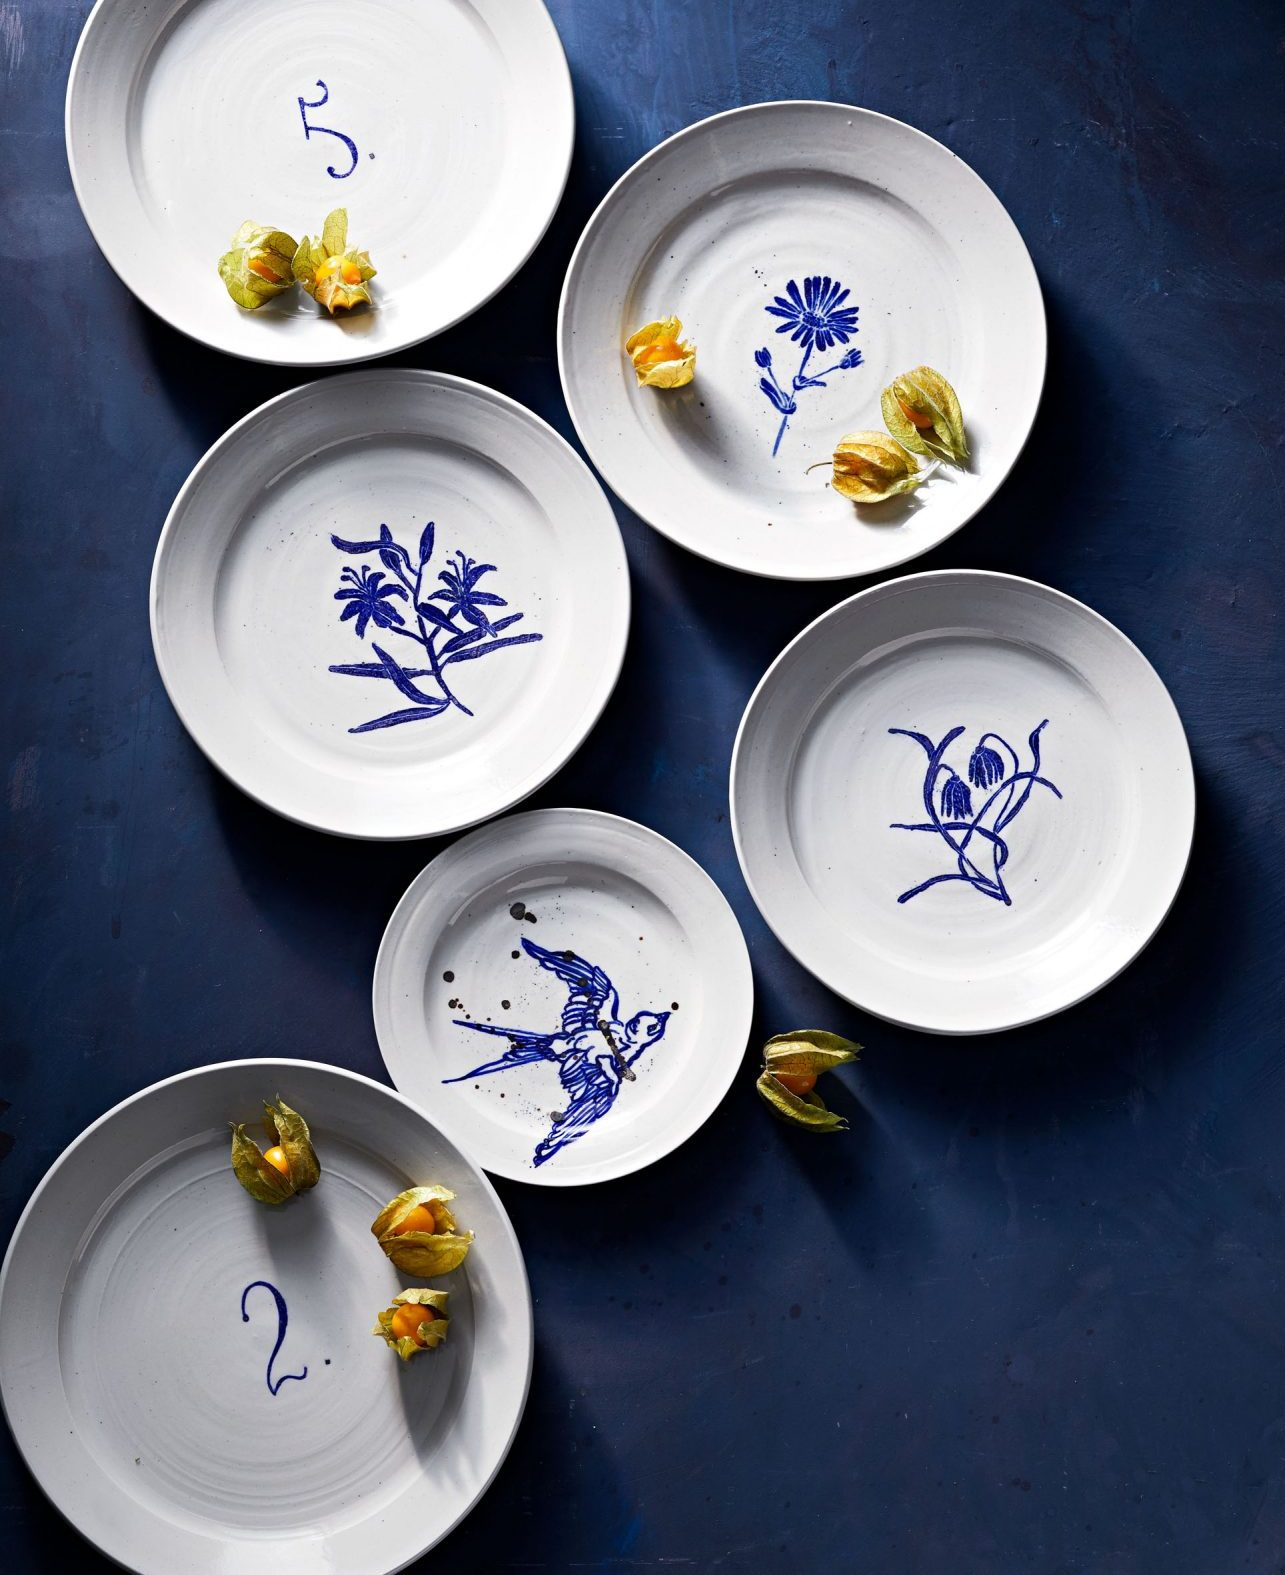 MG by Hand porcelain plates